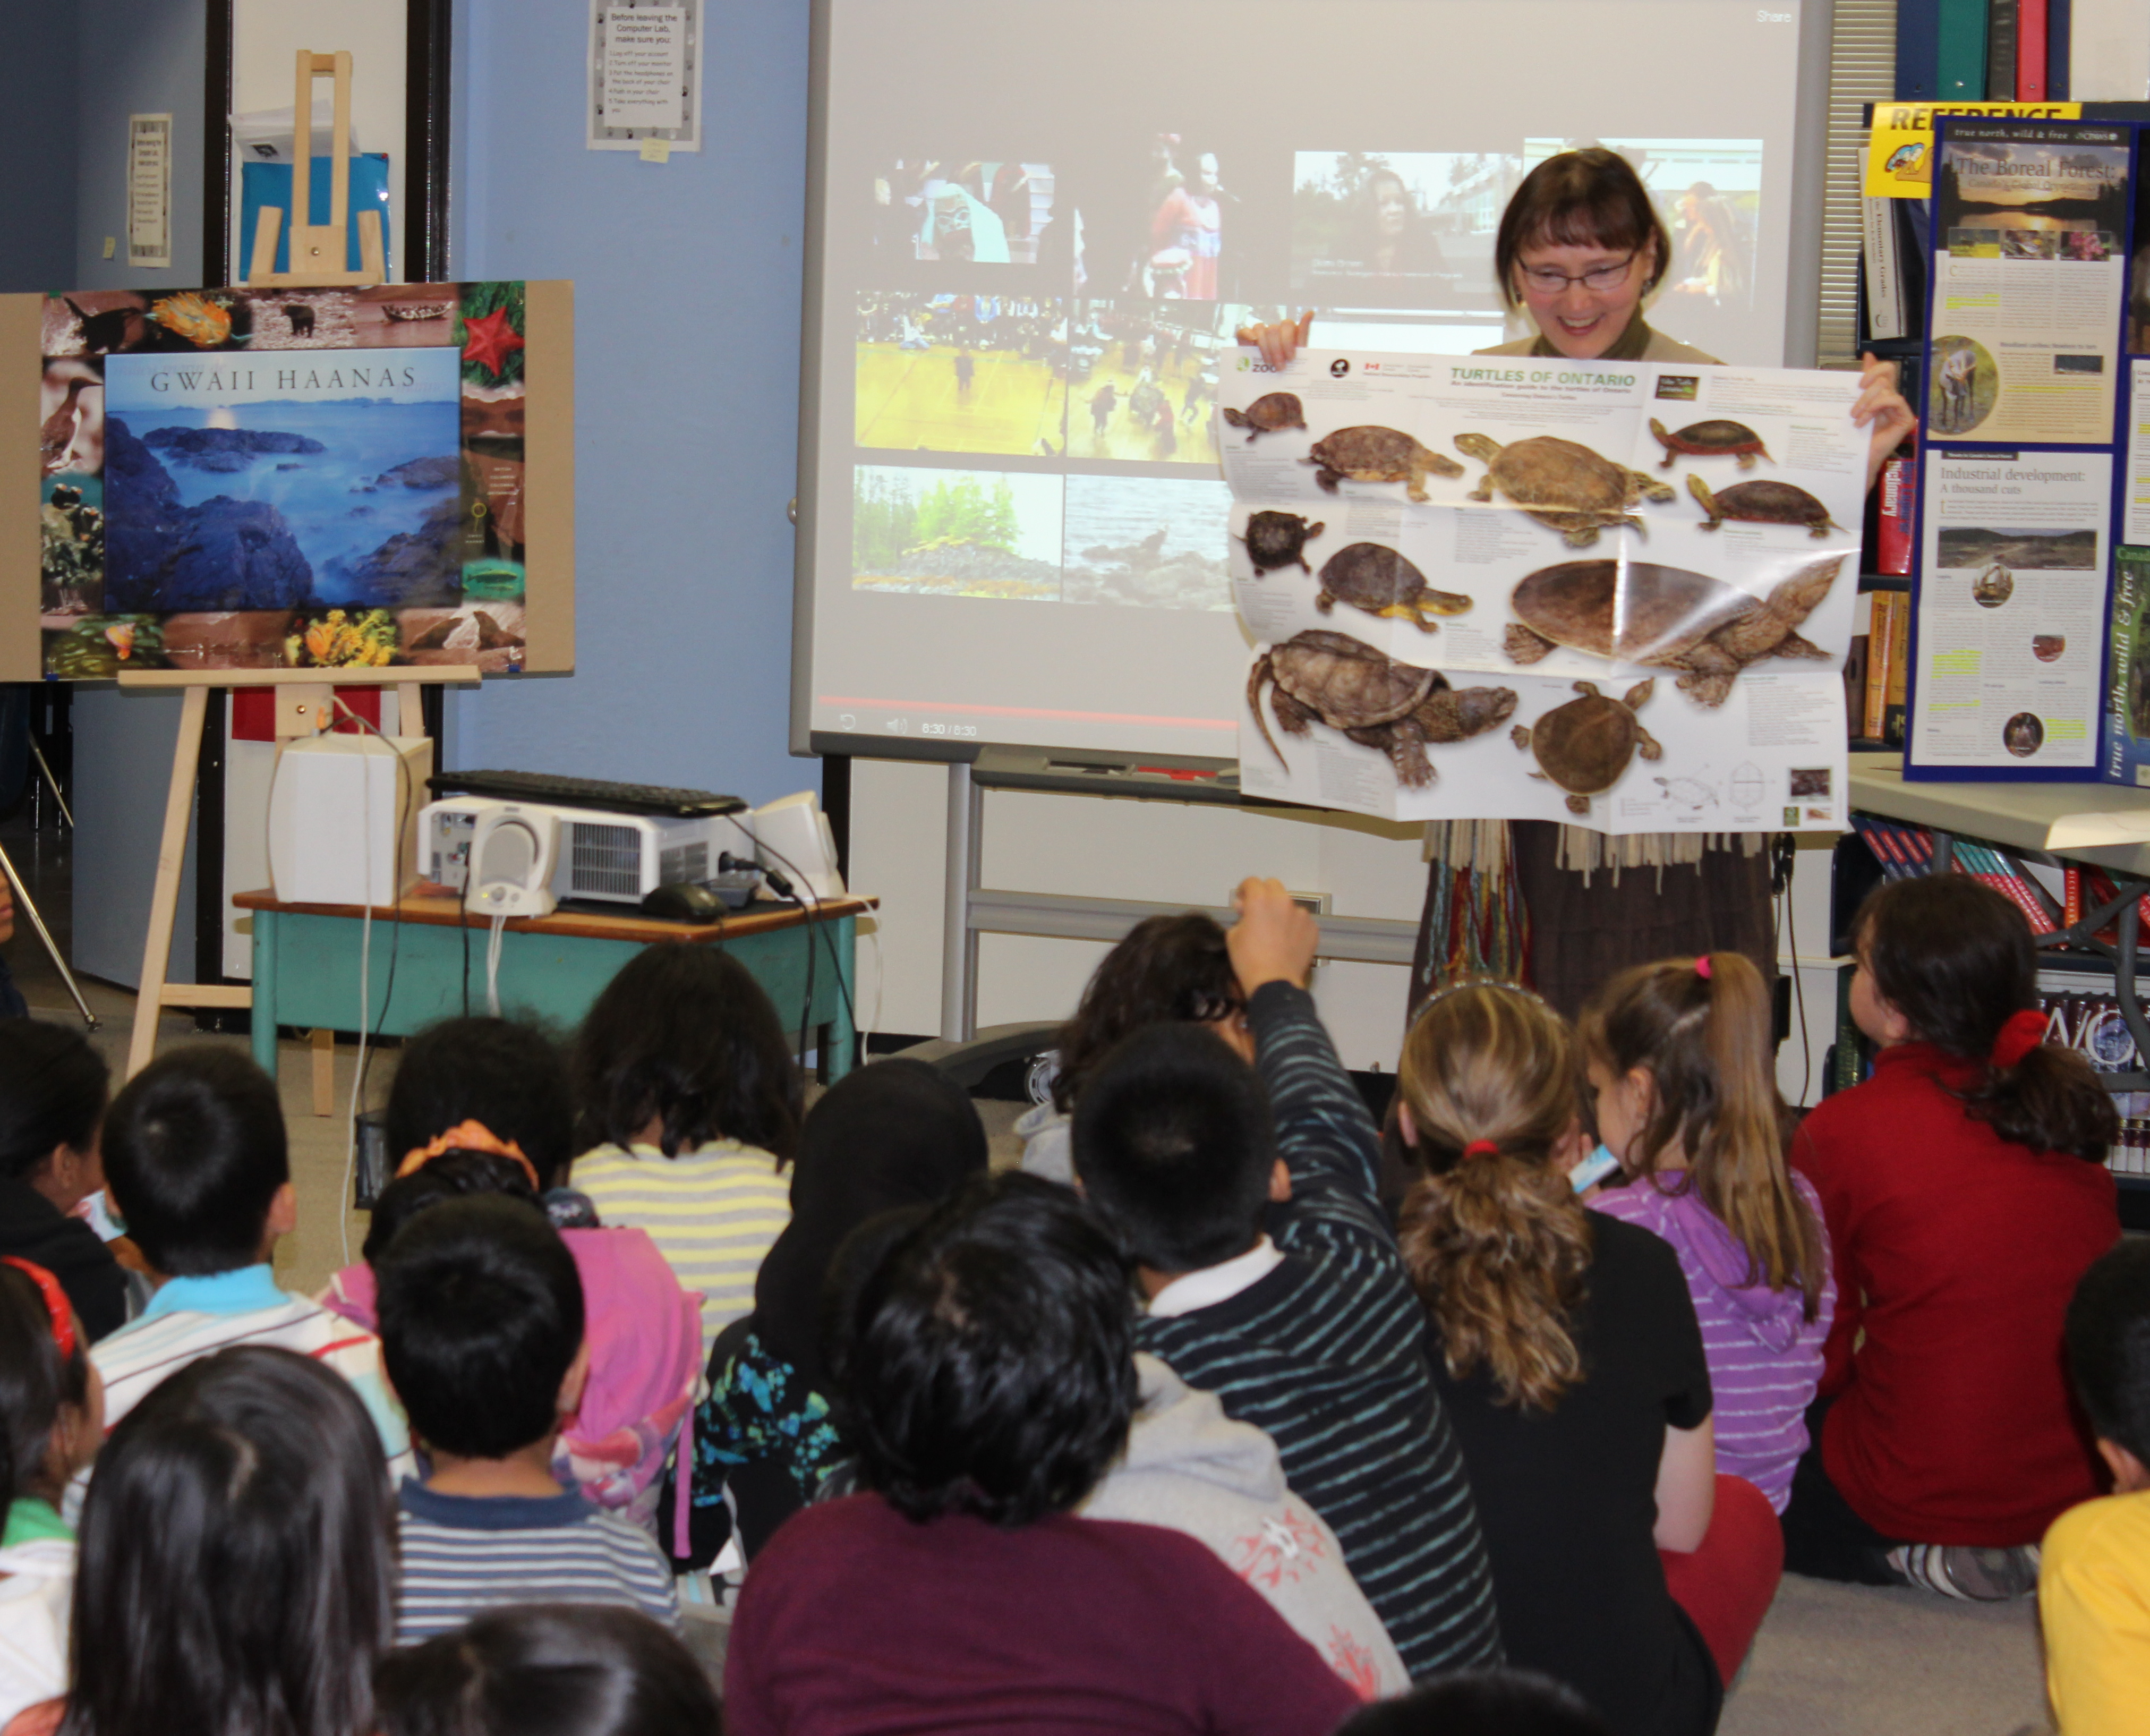 school programs virginia barter as a storyteller and filmmaker my presentations are interdisciplinary covering a wide range of curriculum subjects history geography social studies